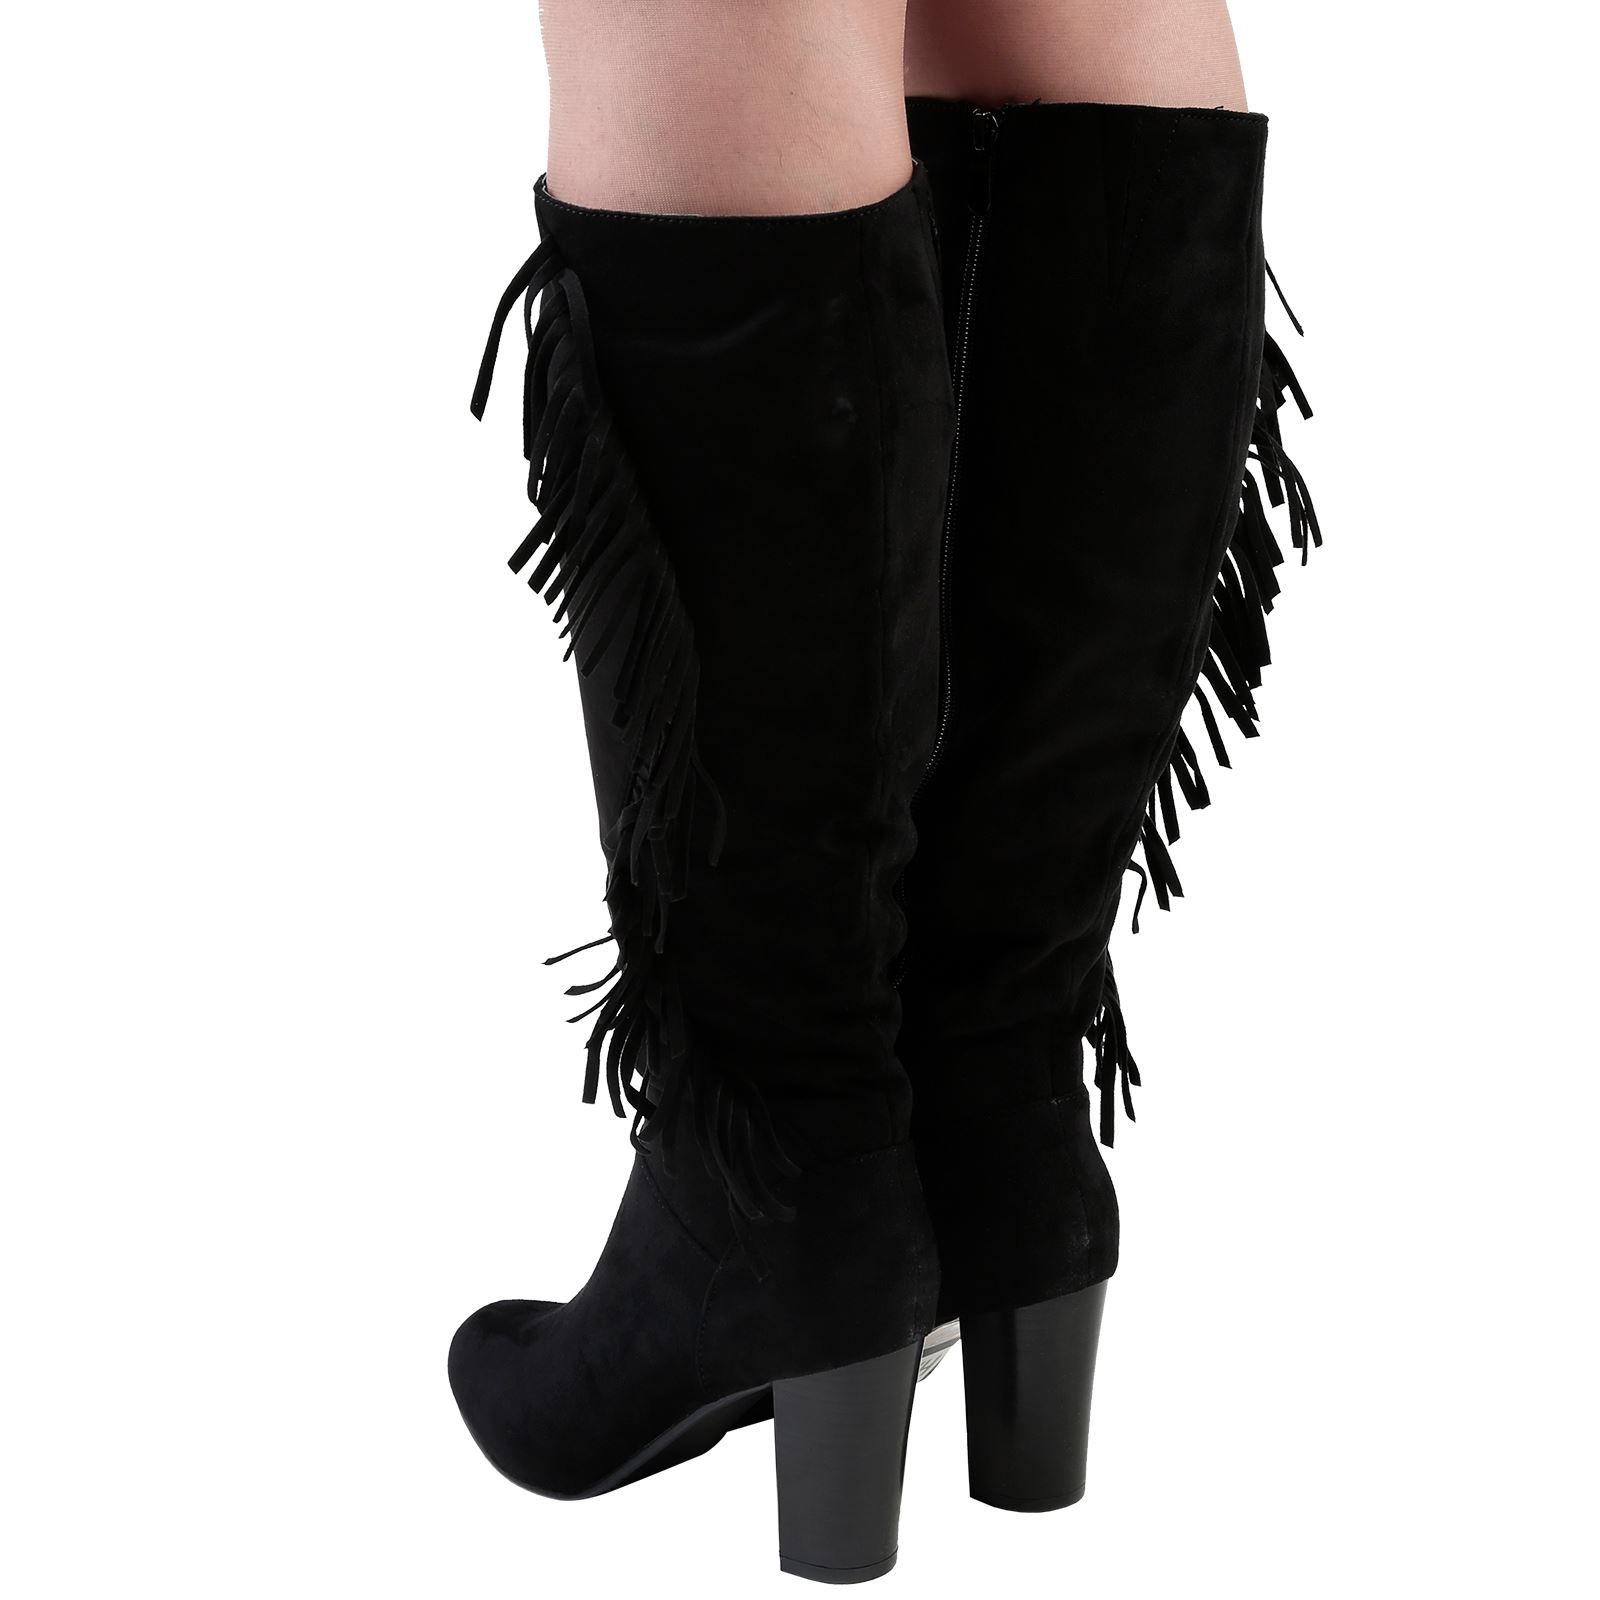 Kayla Womens Mid High Block Heel Fringed Tassel Knee Boots Ladies Shoes Size New | EBay